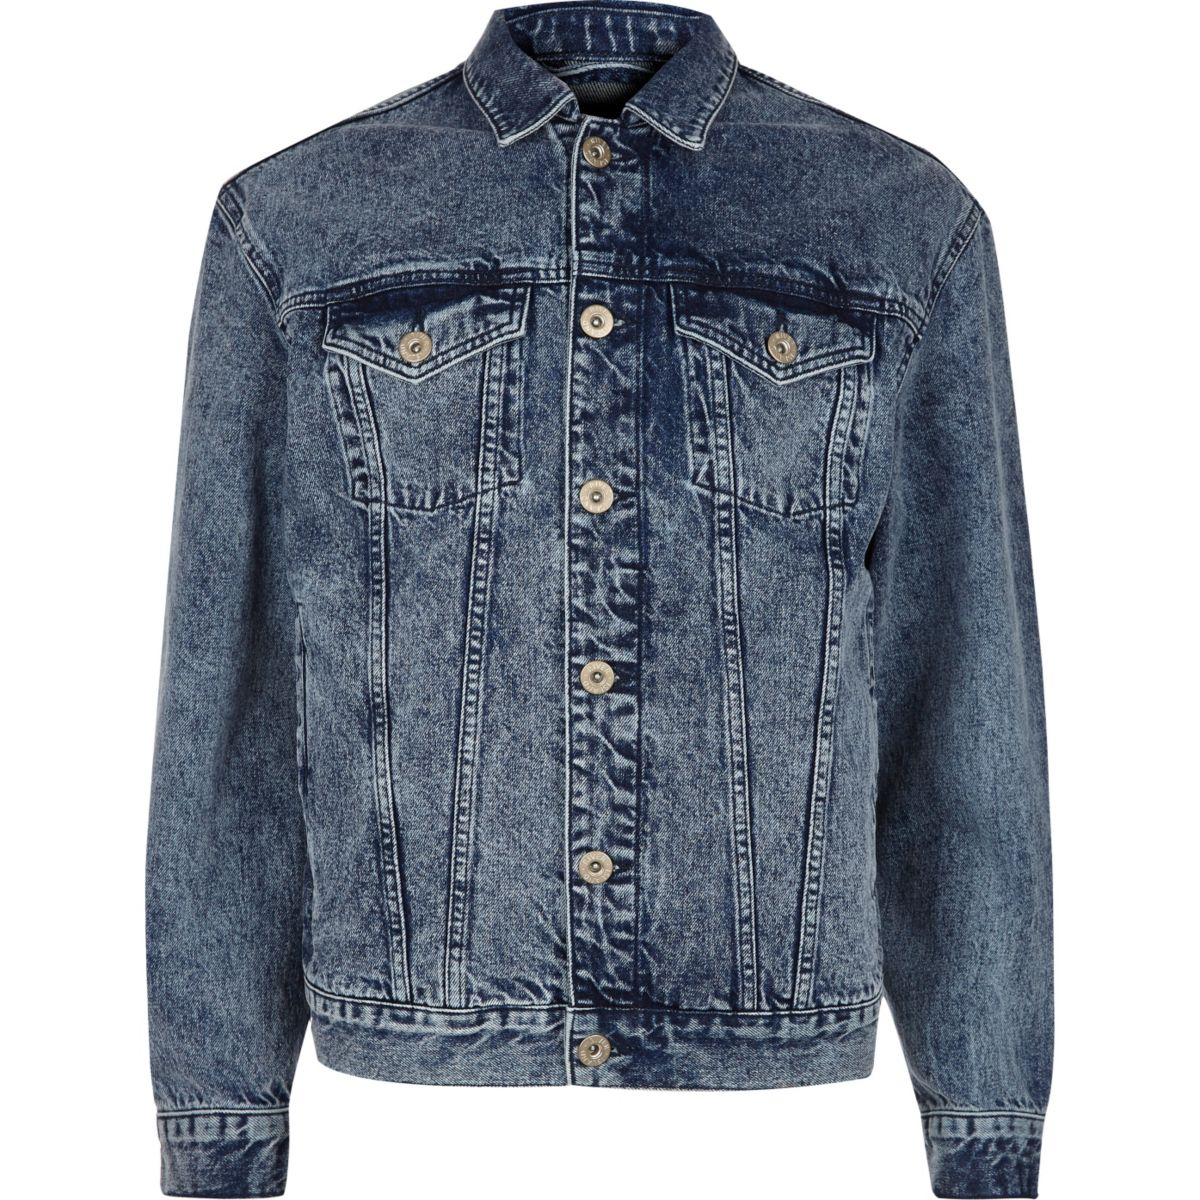 Blue oversized denim jacket